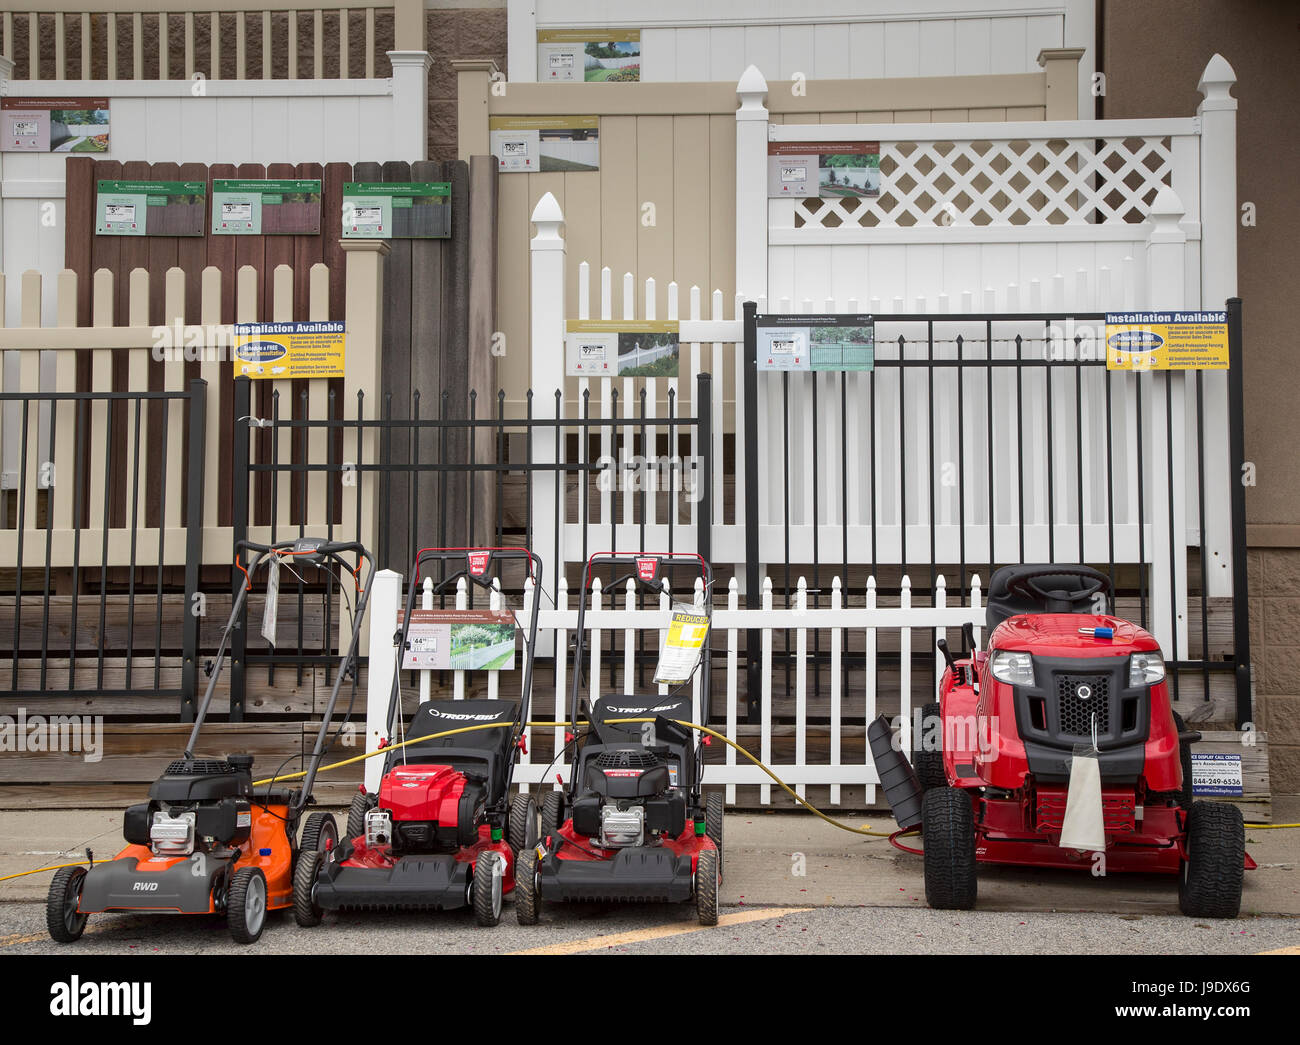 Variety of fences at a Lowe's home improvement store in Monroe, New York - Stock Image